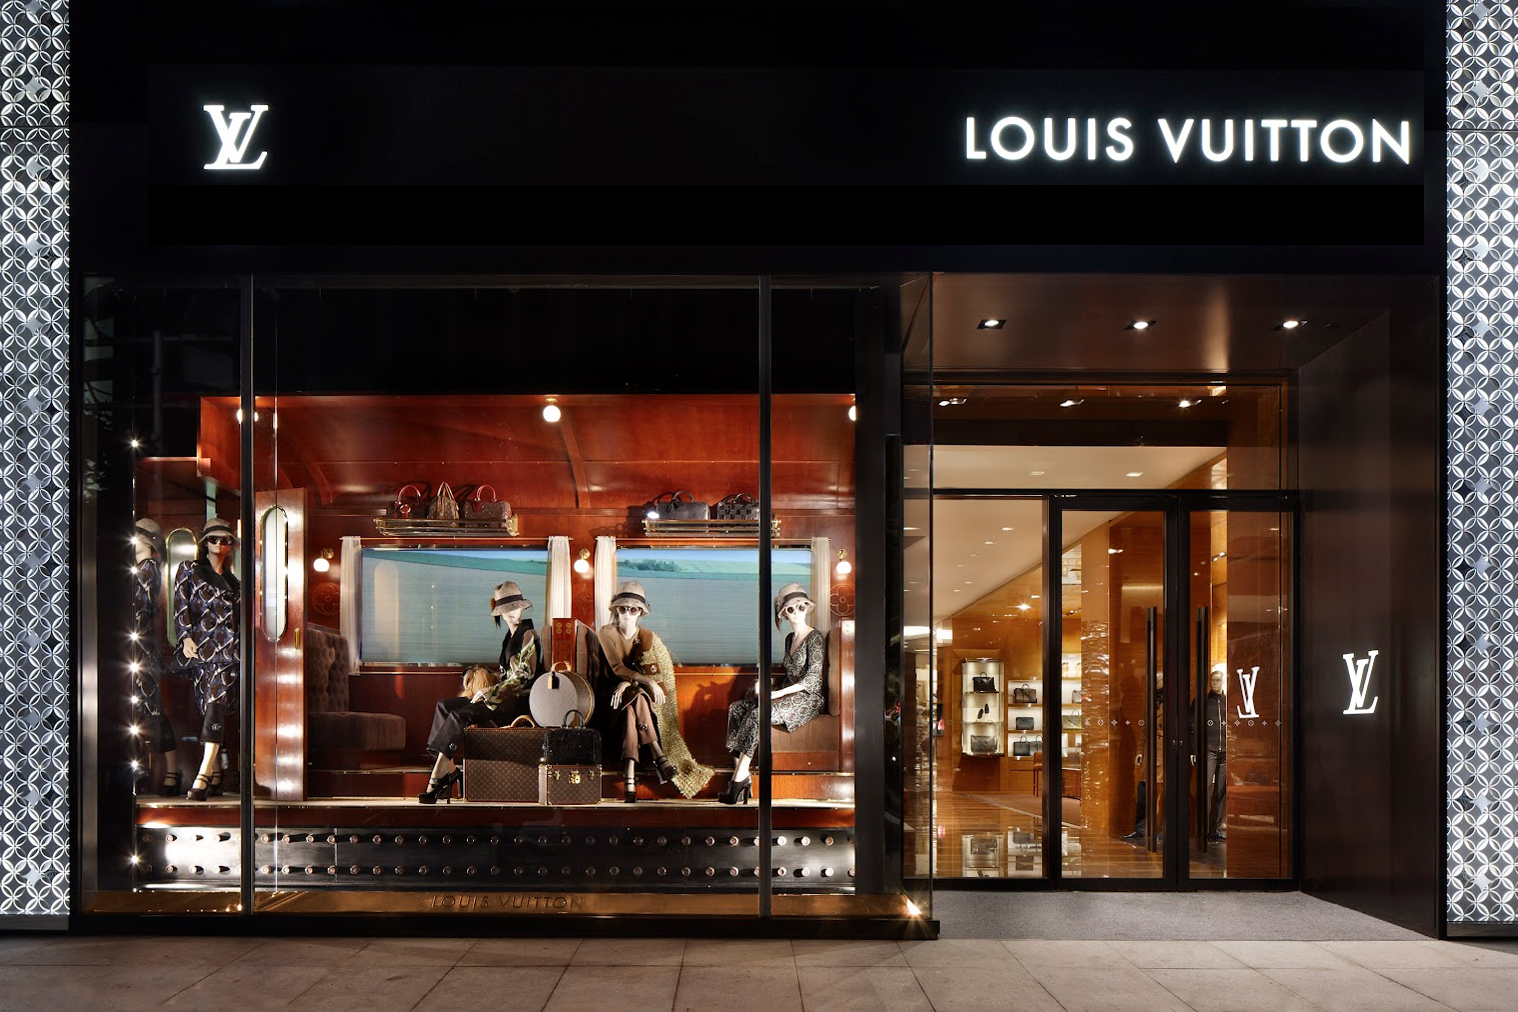 Louis Vuitton Preparing to Shut Down Numerous Retail Stores in China